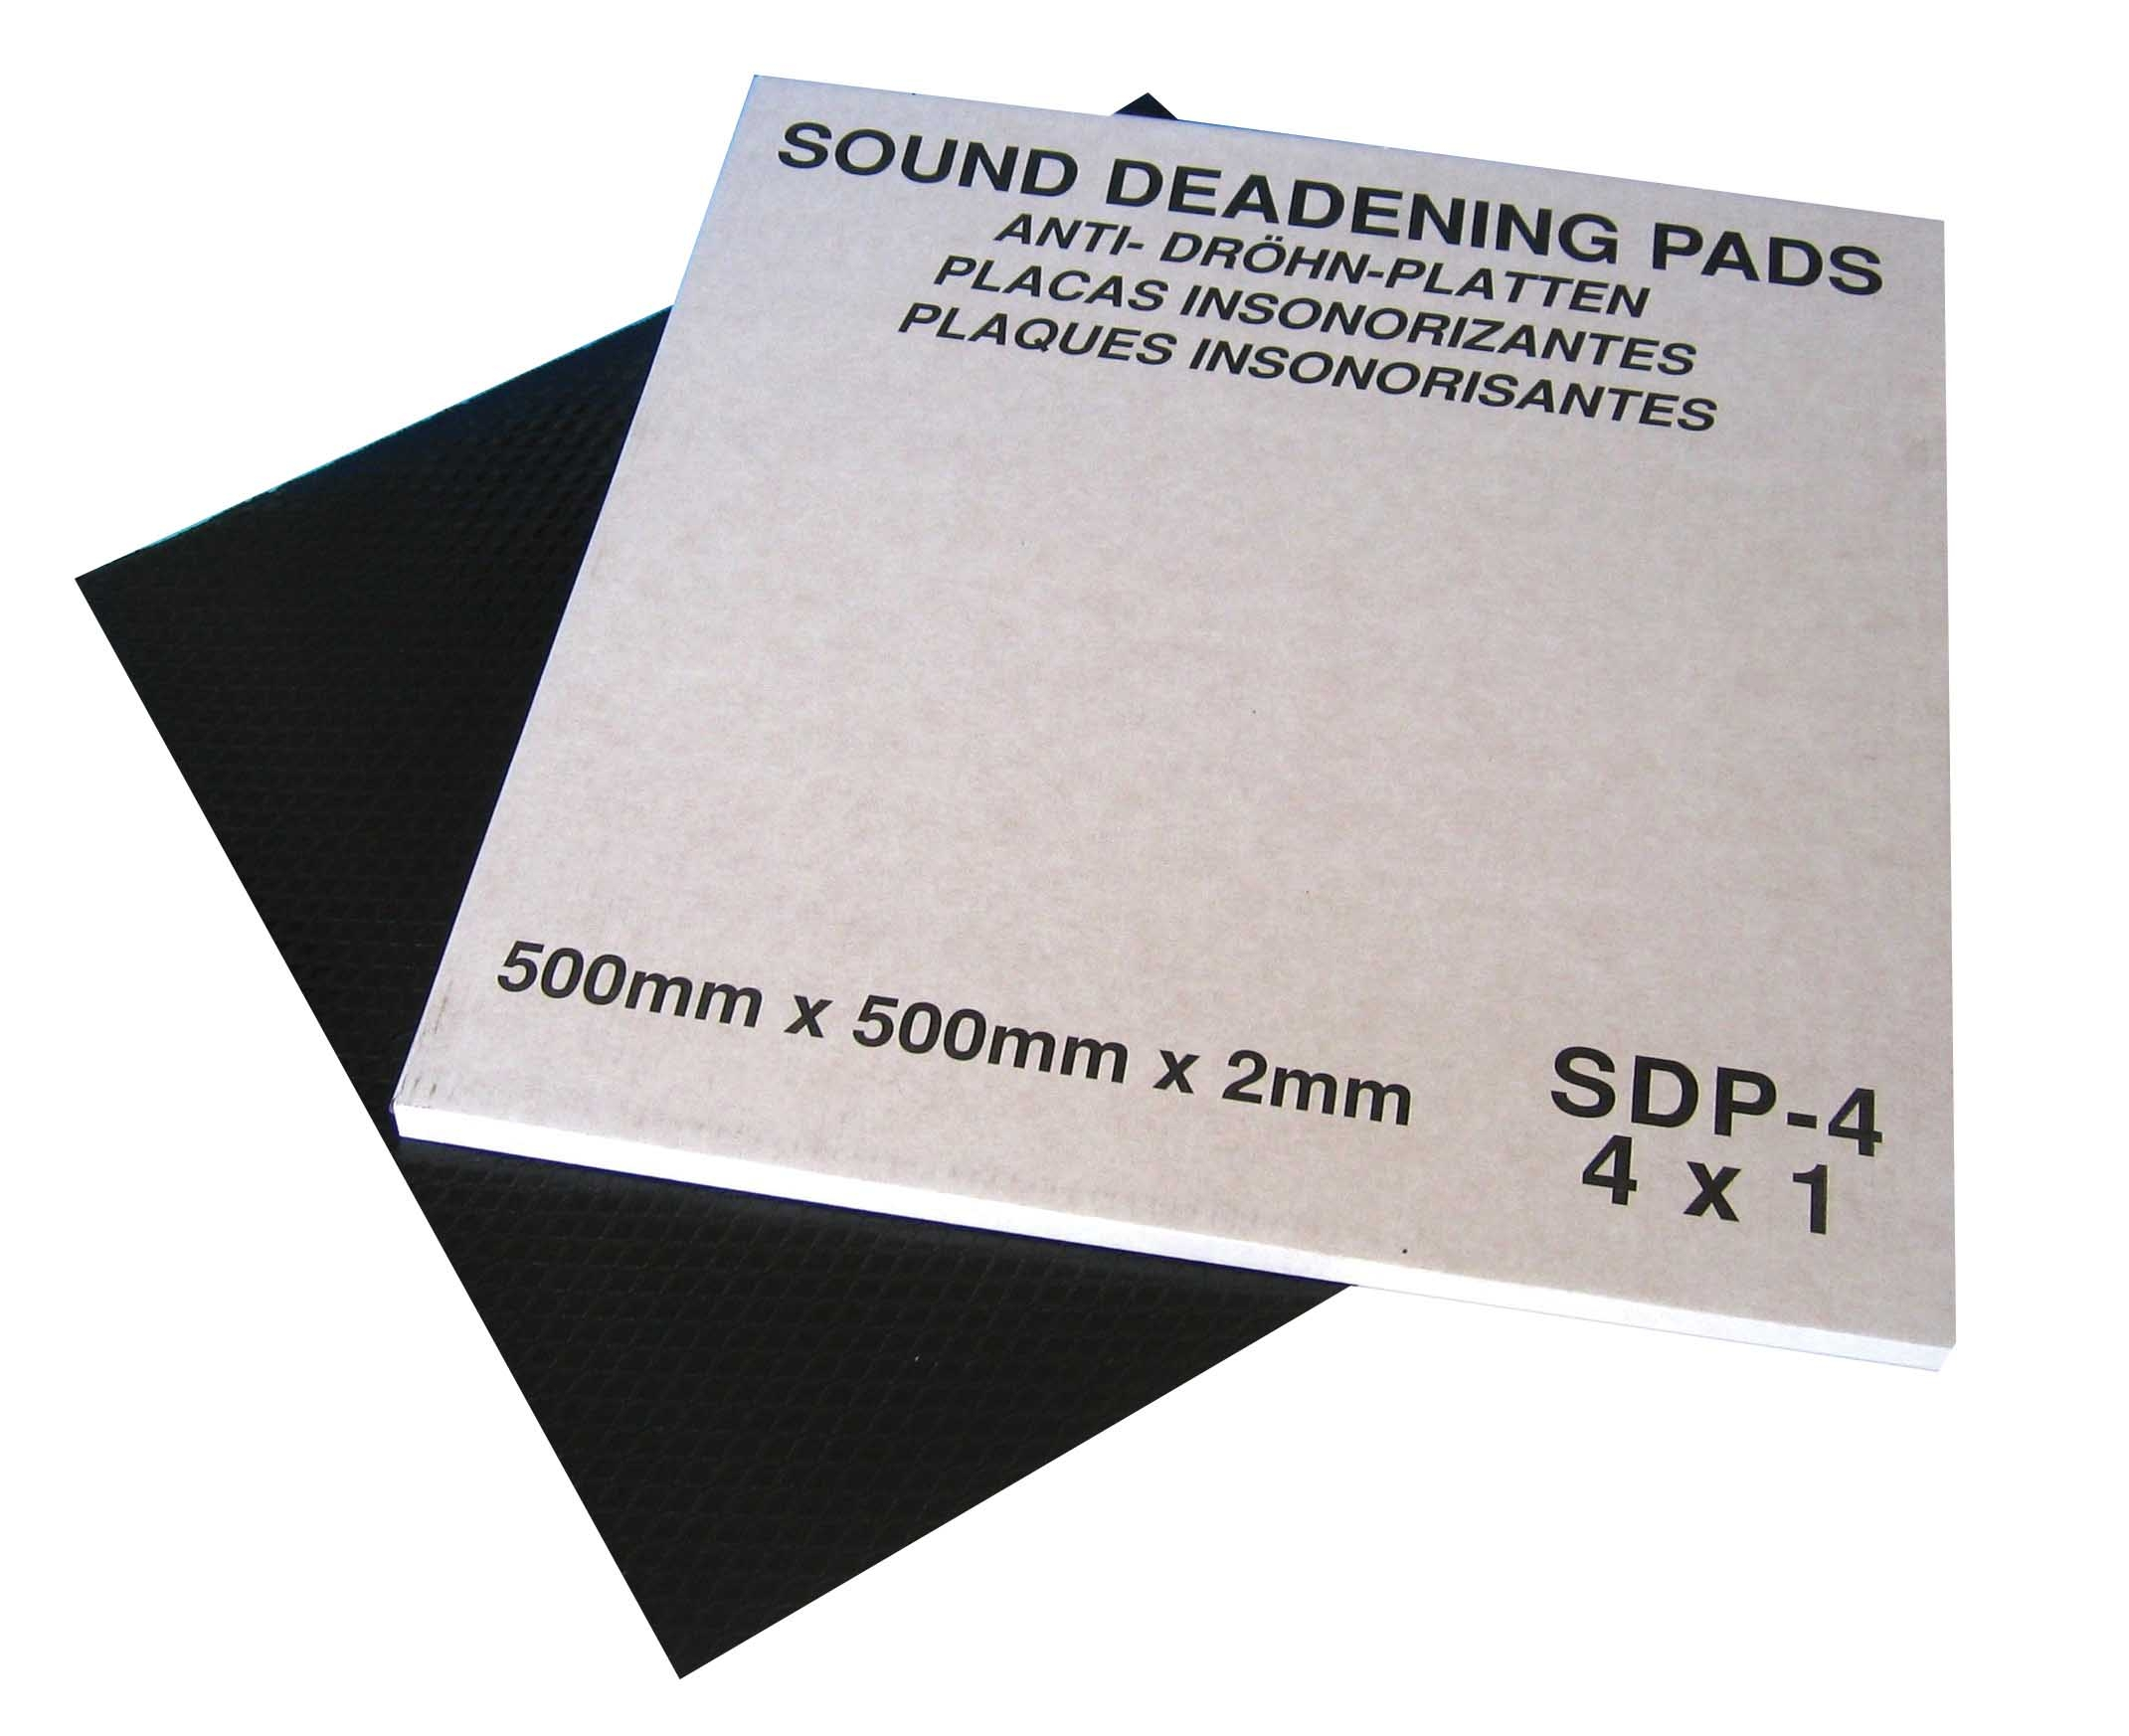 Sound Deadening Pads 500 X 500 mm PK4